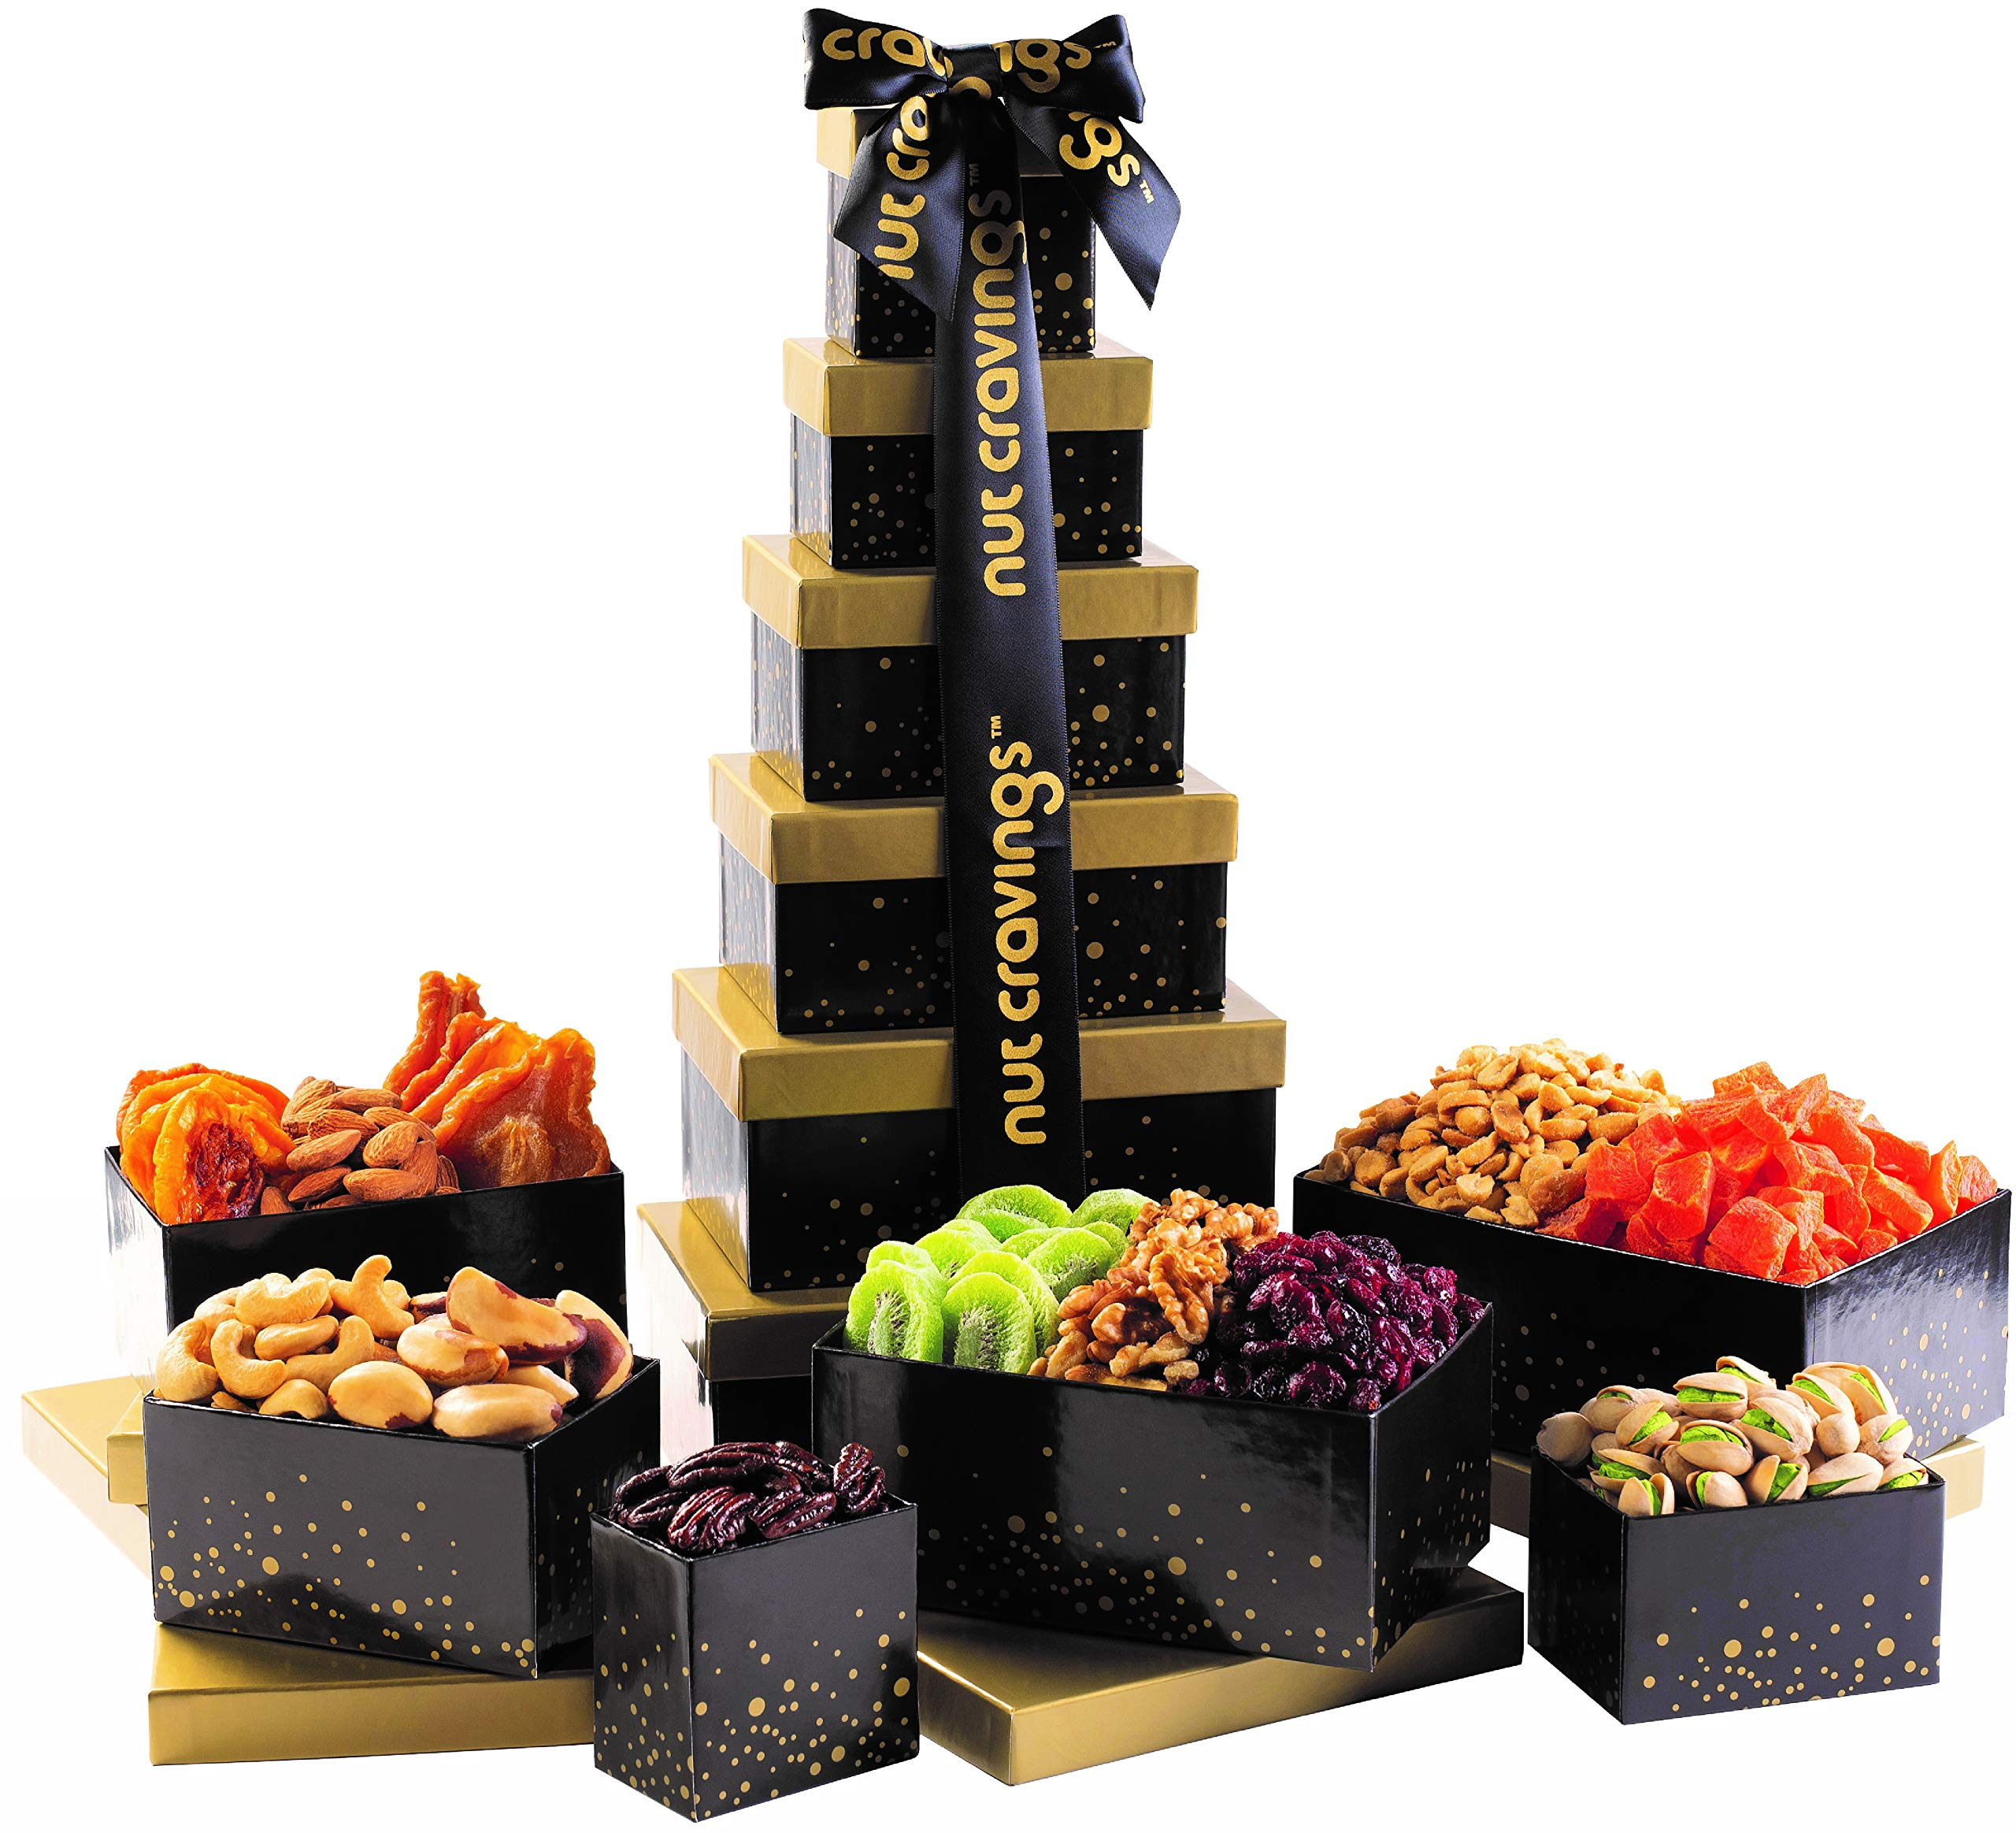 Holiday Nut and Fruit Gift Tower - Gourmet Mix of 12 Assorted Nuts & Dried Fruit Snacks in Individual Boxes - Large Bulk Variety Basket Set for Christmas, Holiday or Easter Gift By Nut Cravings